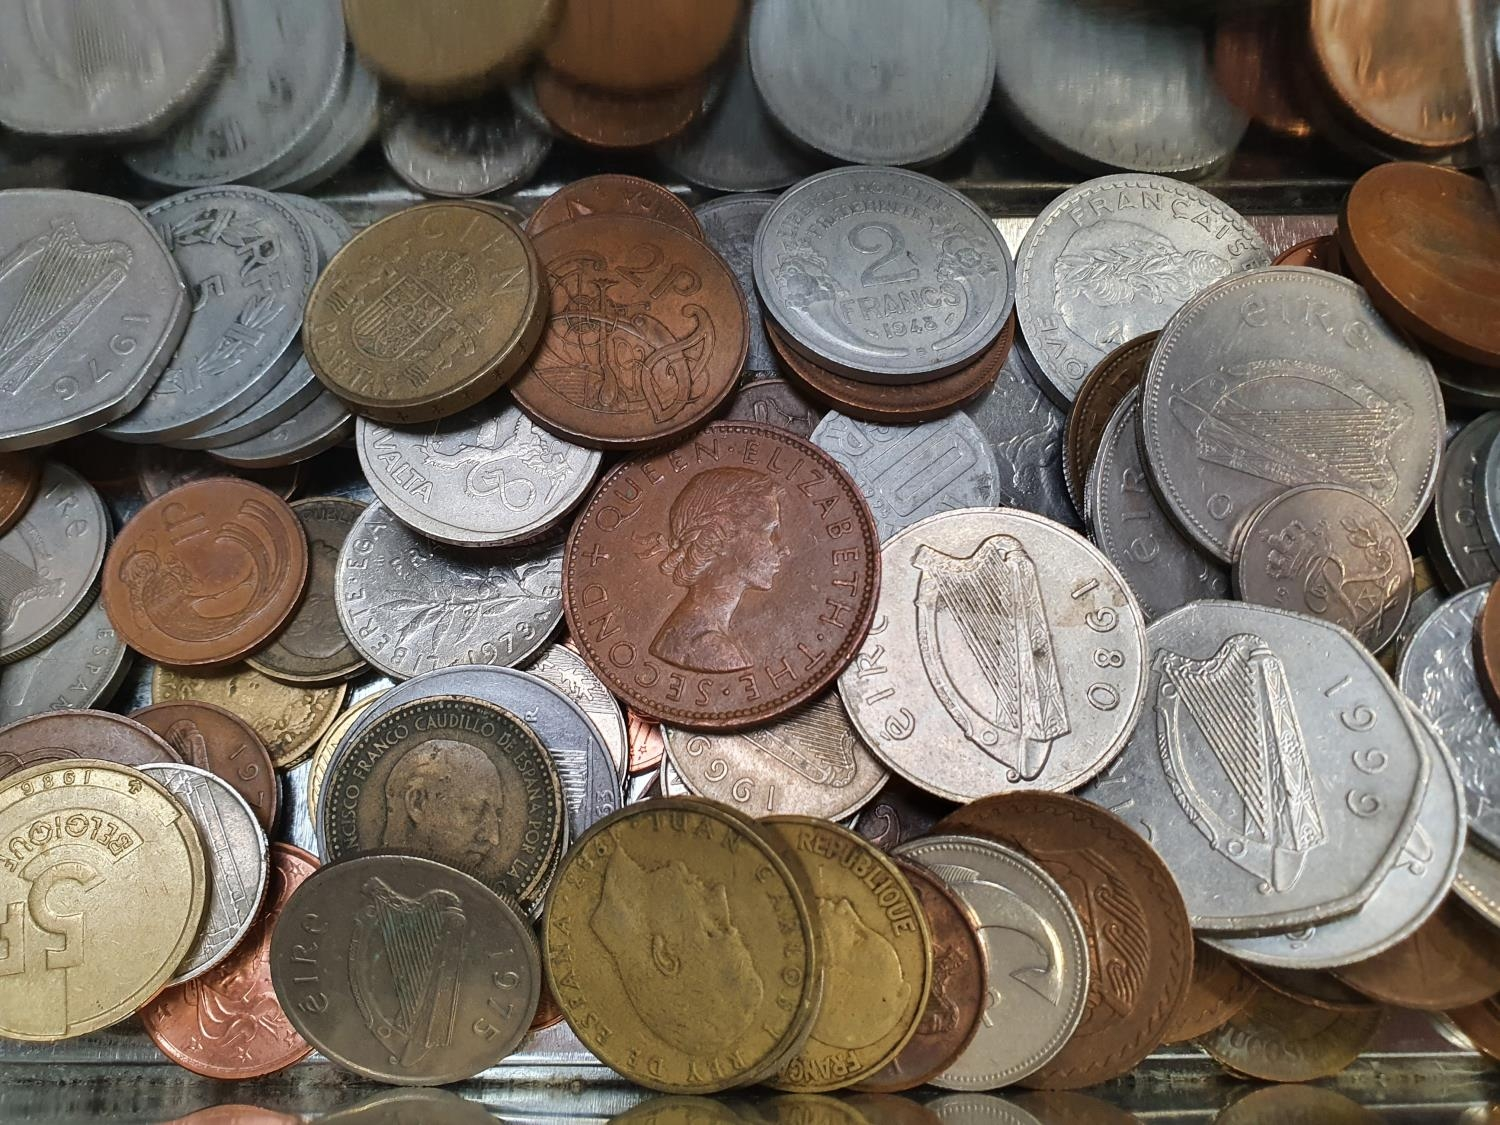 A collection of foreign coins, some uncirculated. - Image 3 of 5